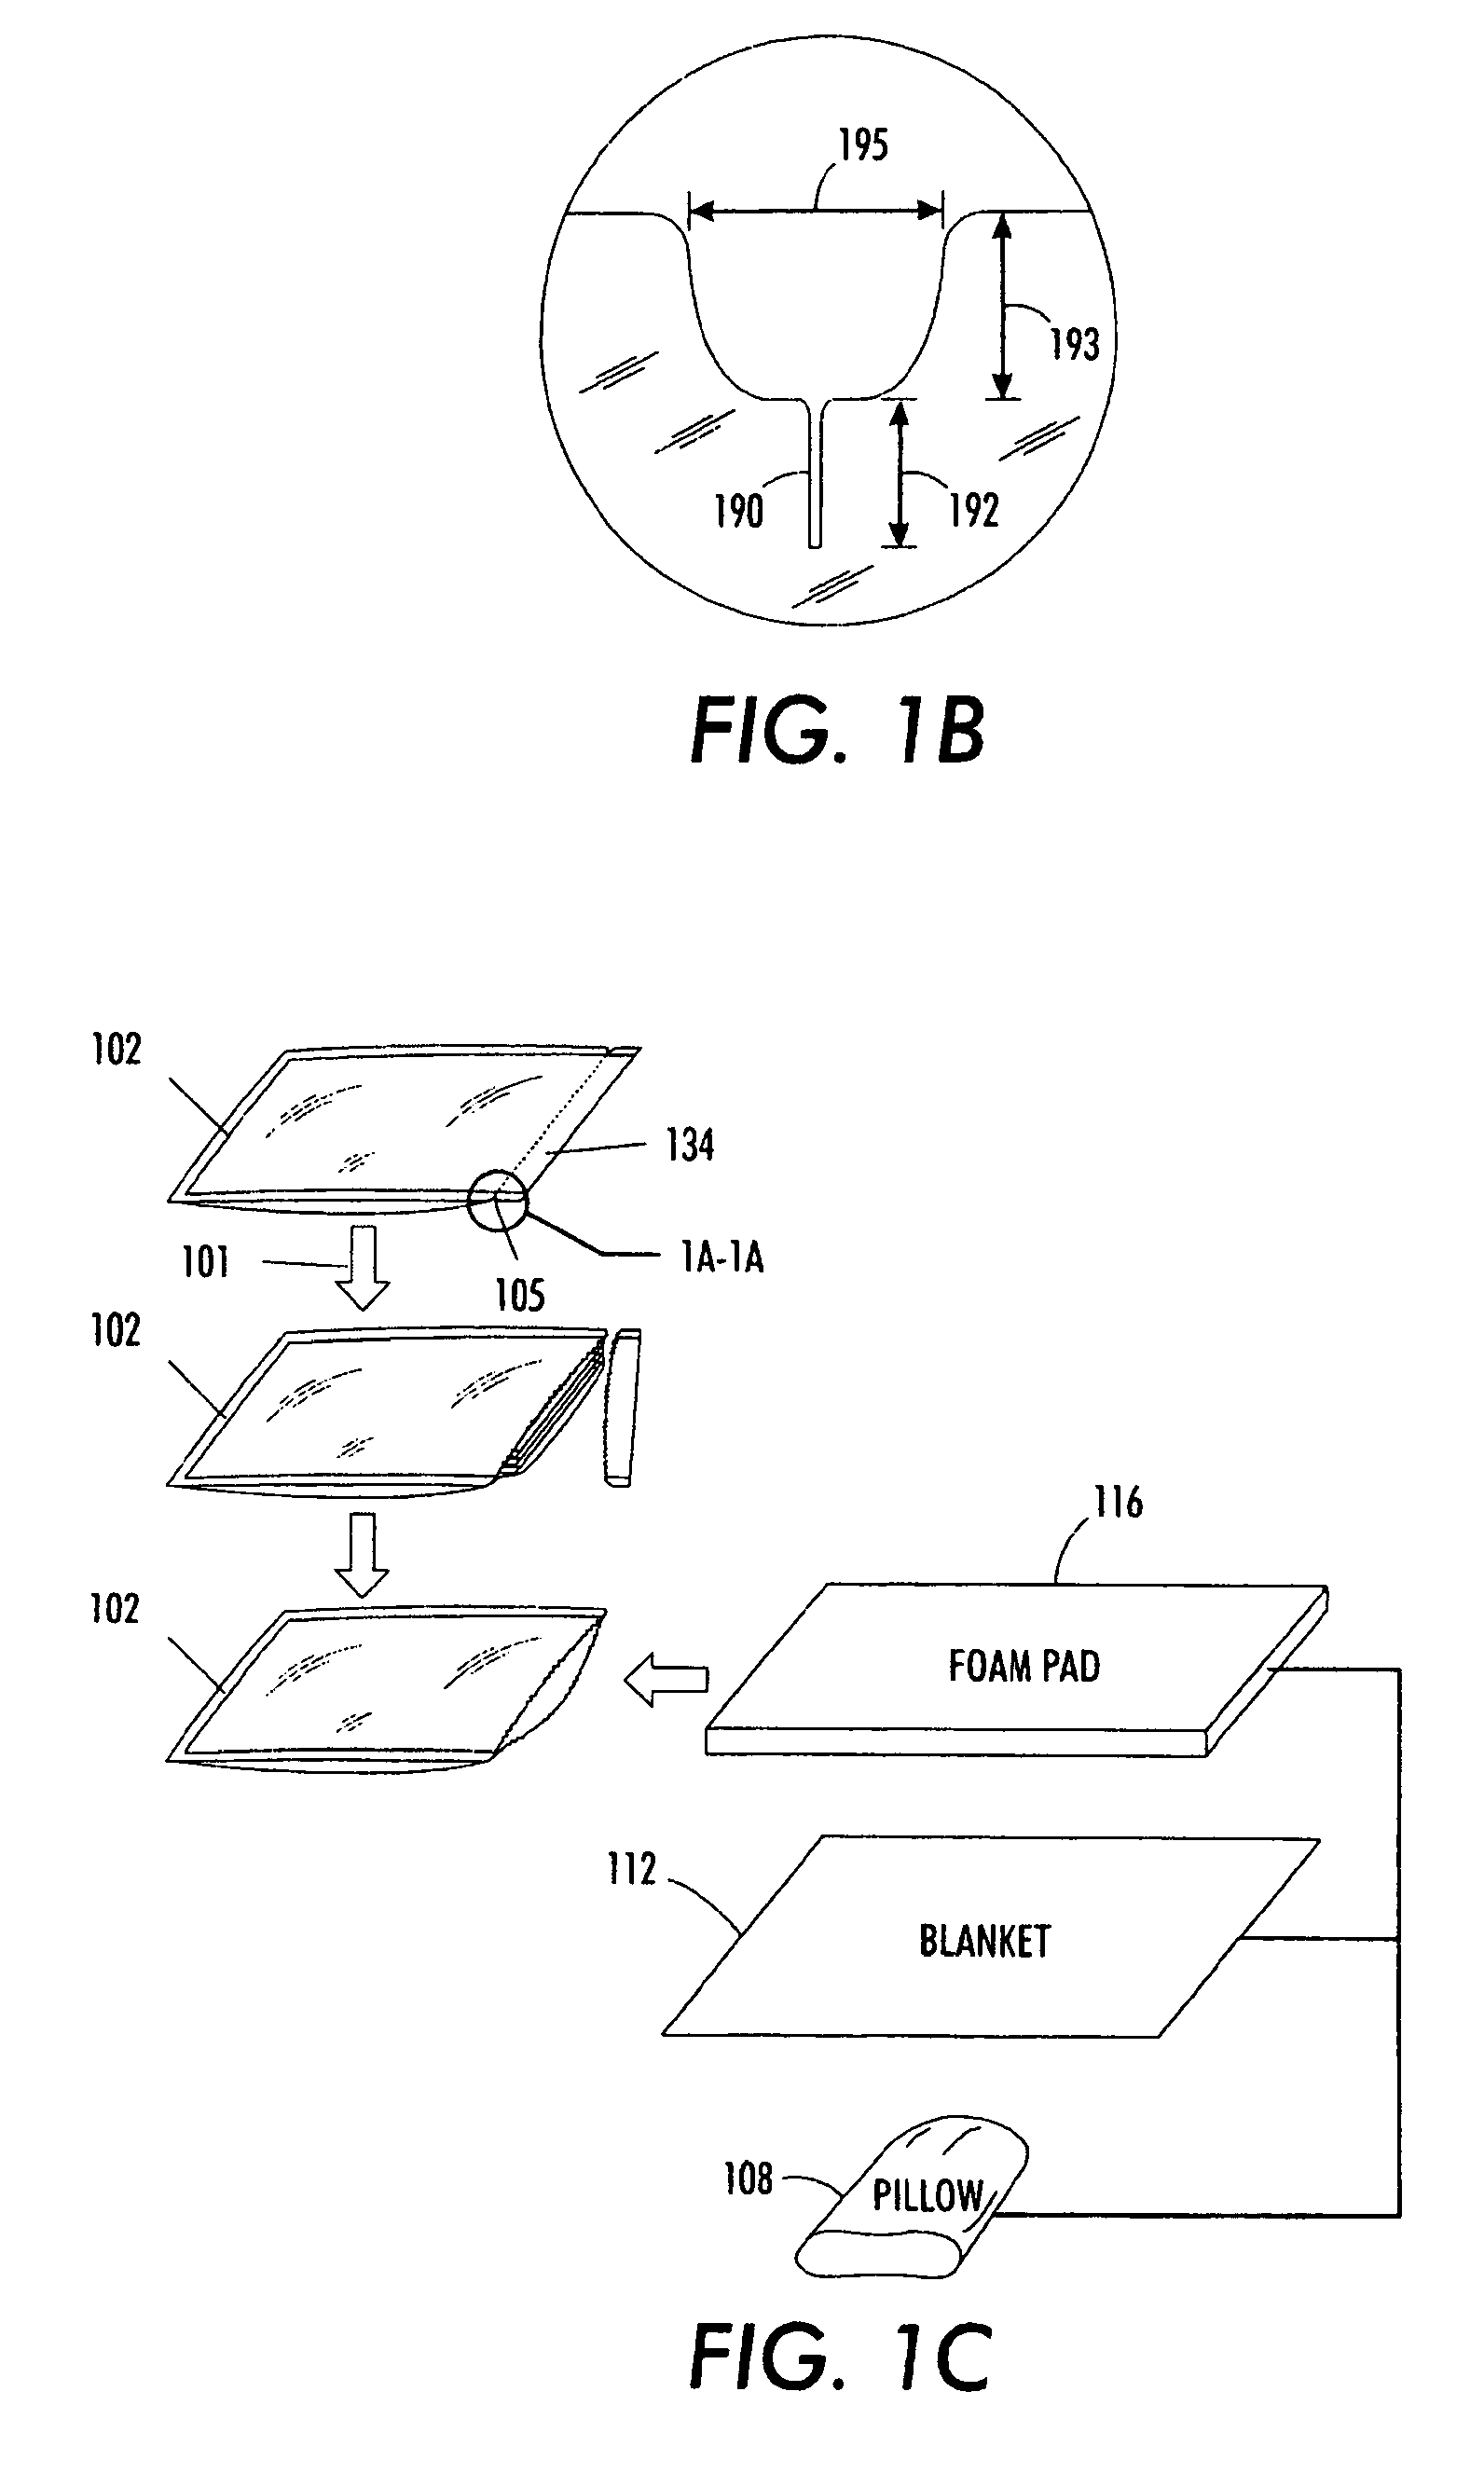 Sealable Mattress Bag Patent US7870960 - Disaster pack - Google Patents